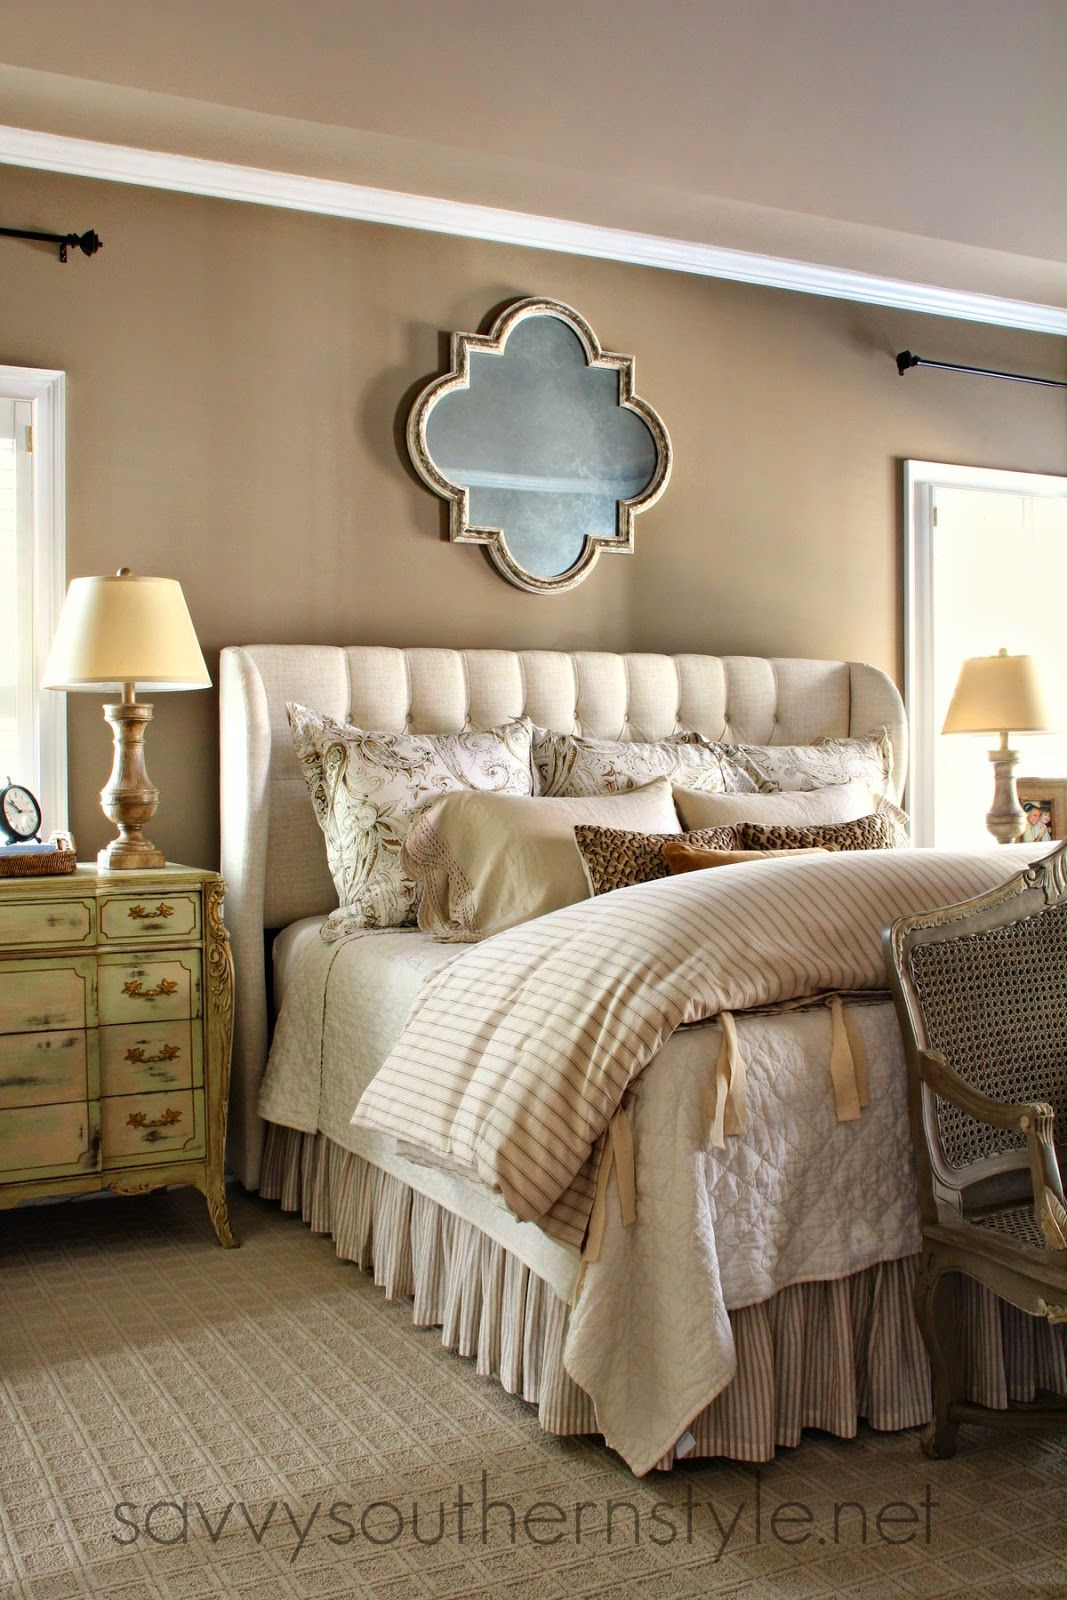 Pottery Barn Bedroom Master Reveal With King Size Bed Upholstered Headboard Pottery